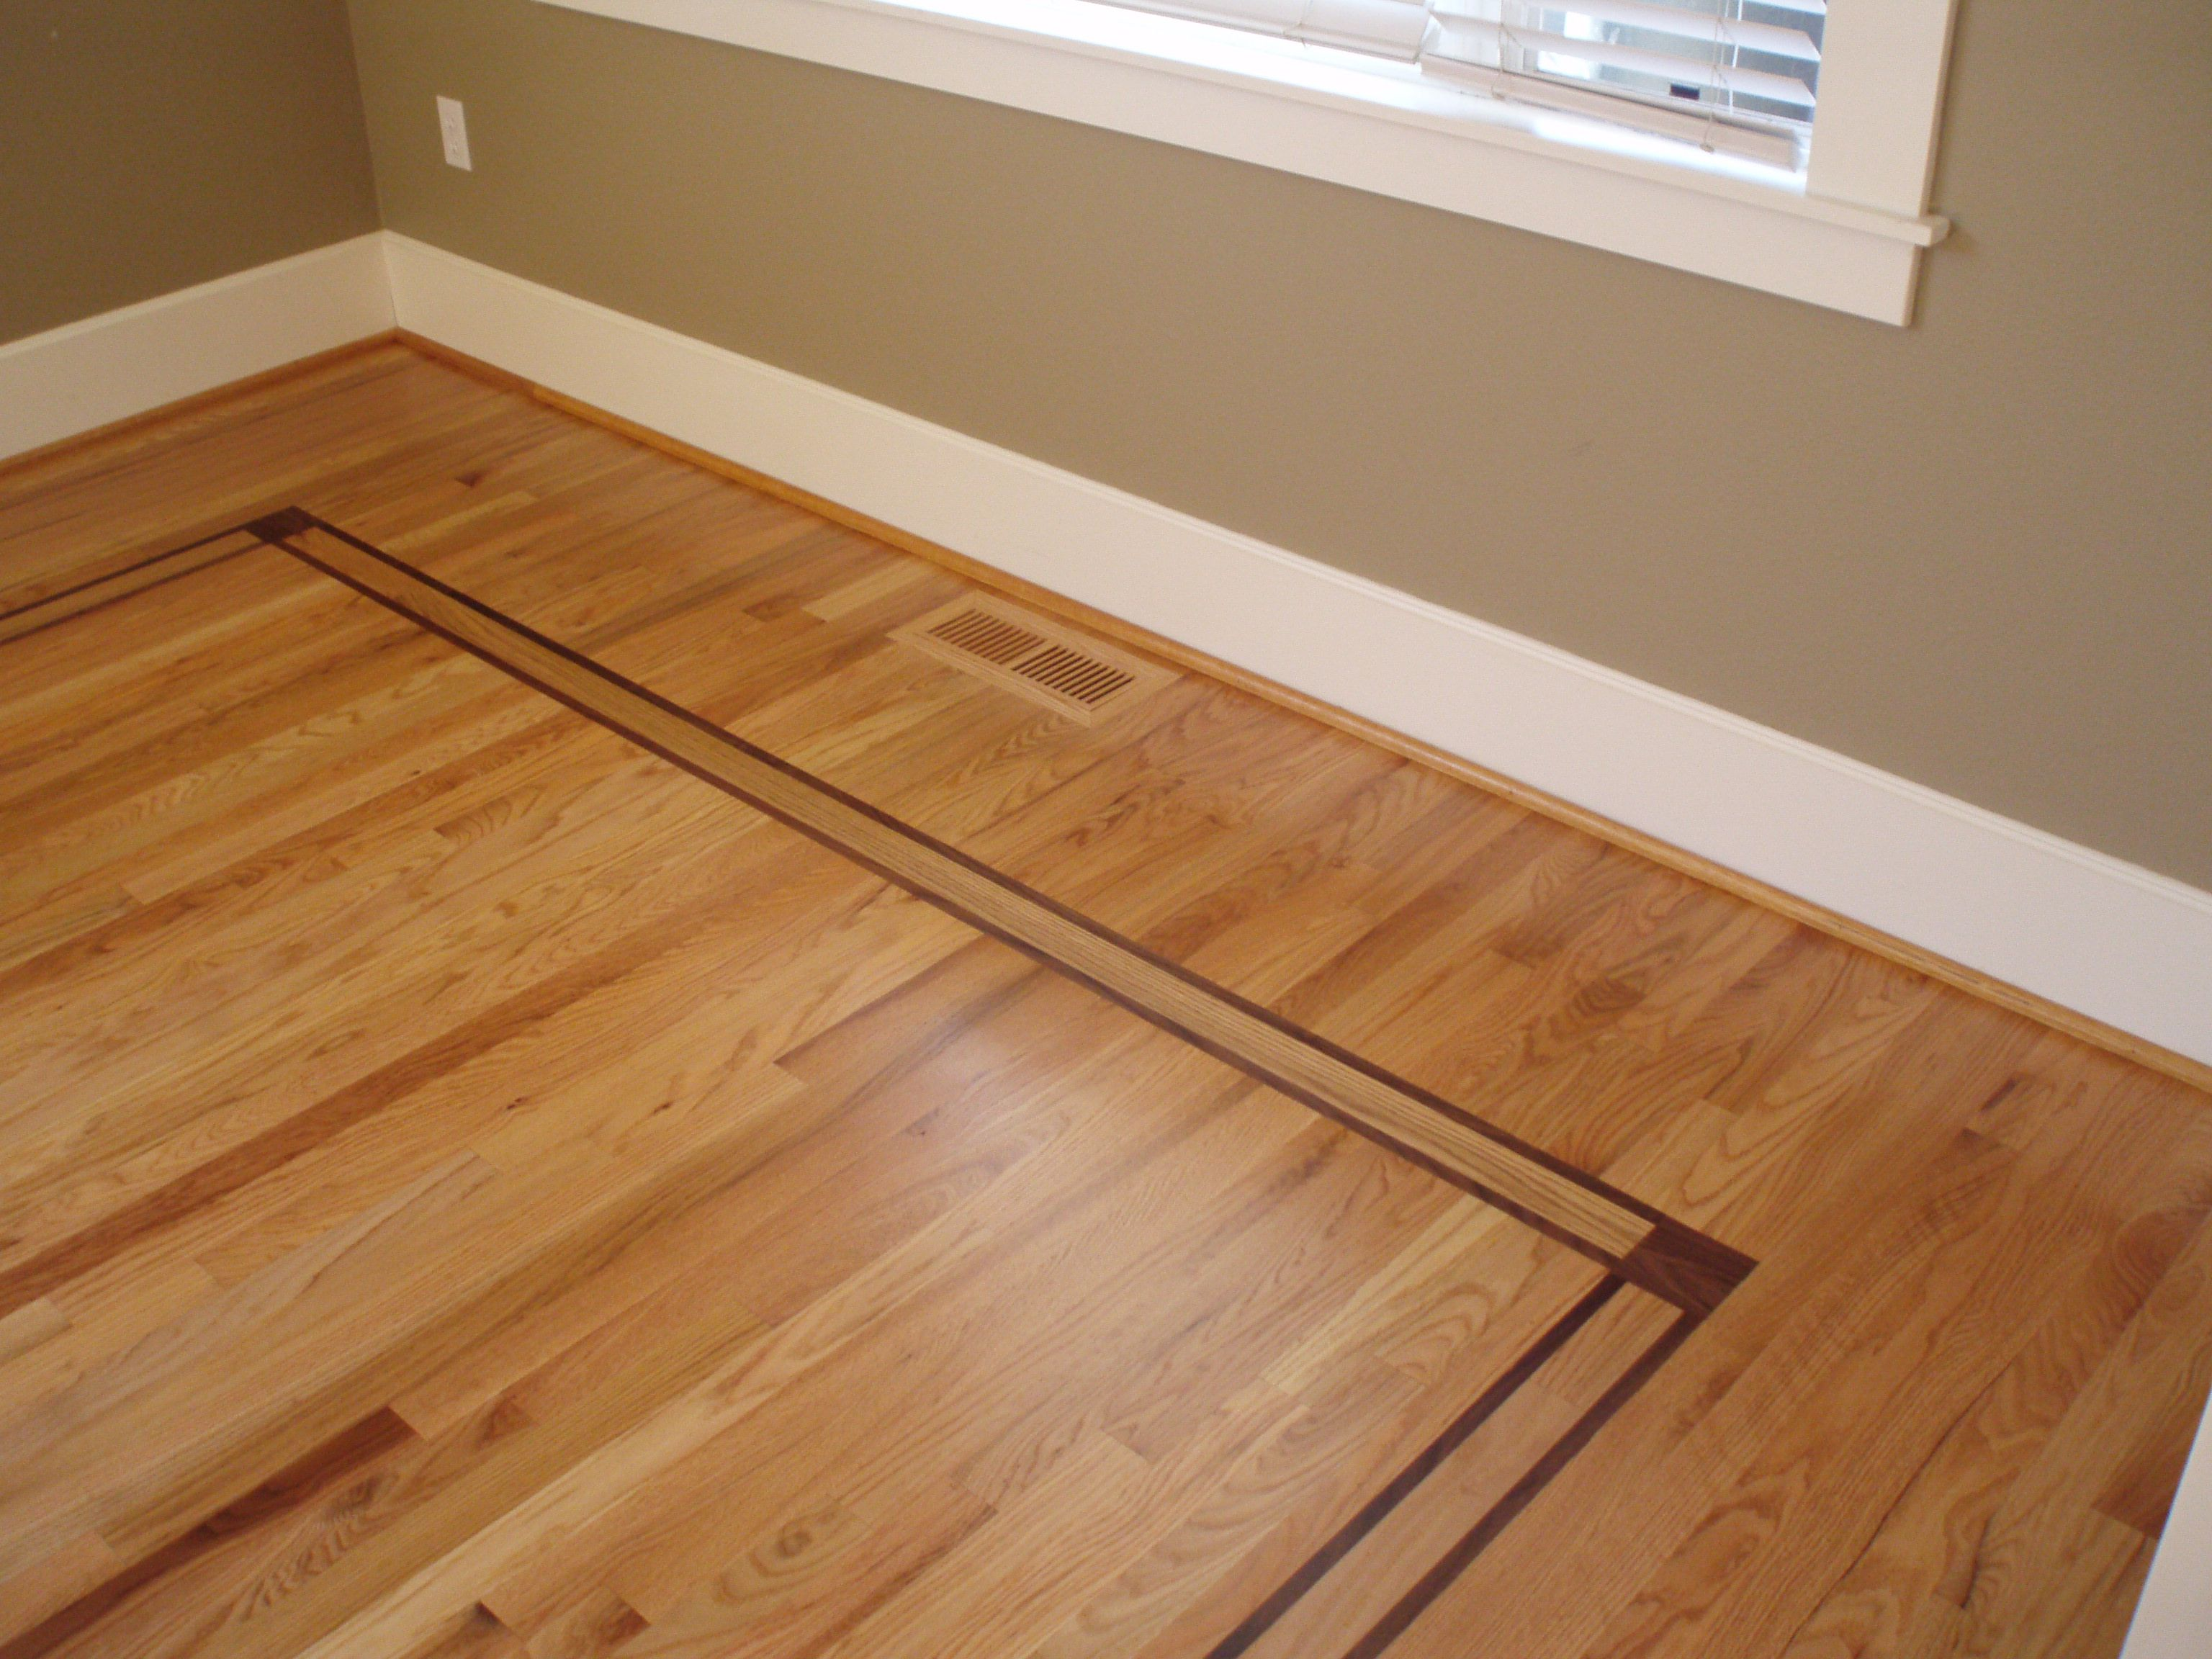 Inlay of walnut with red oak flooring www